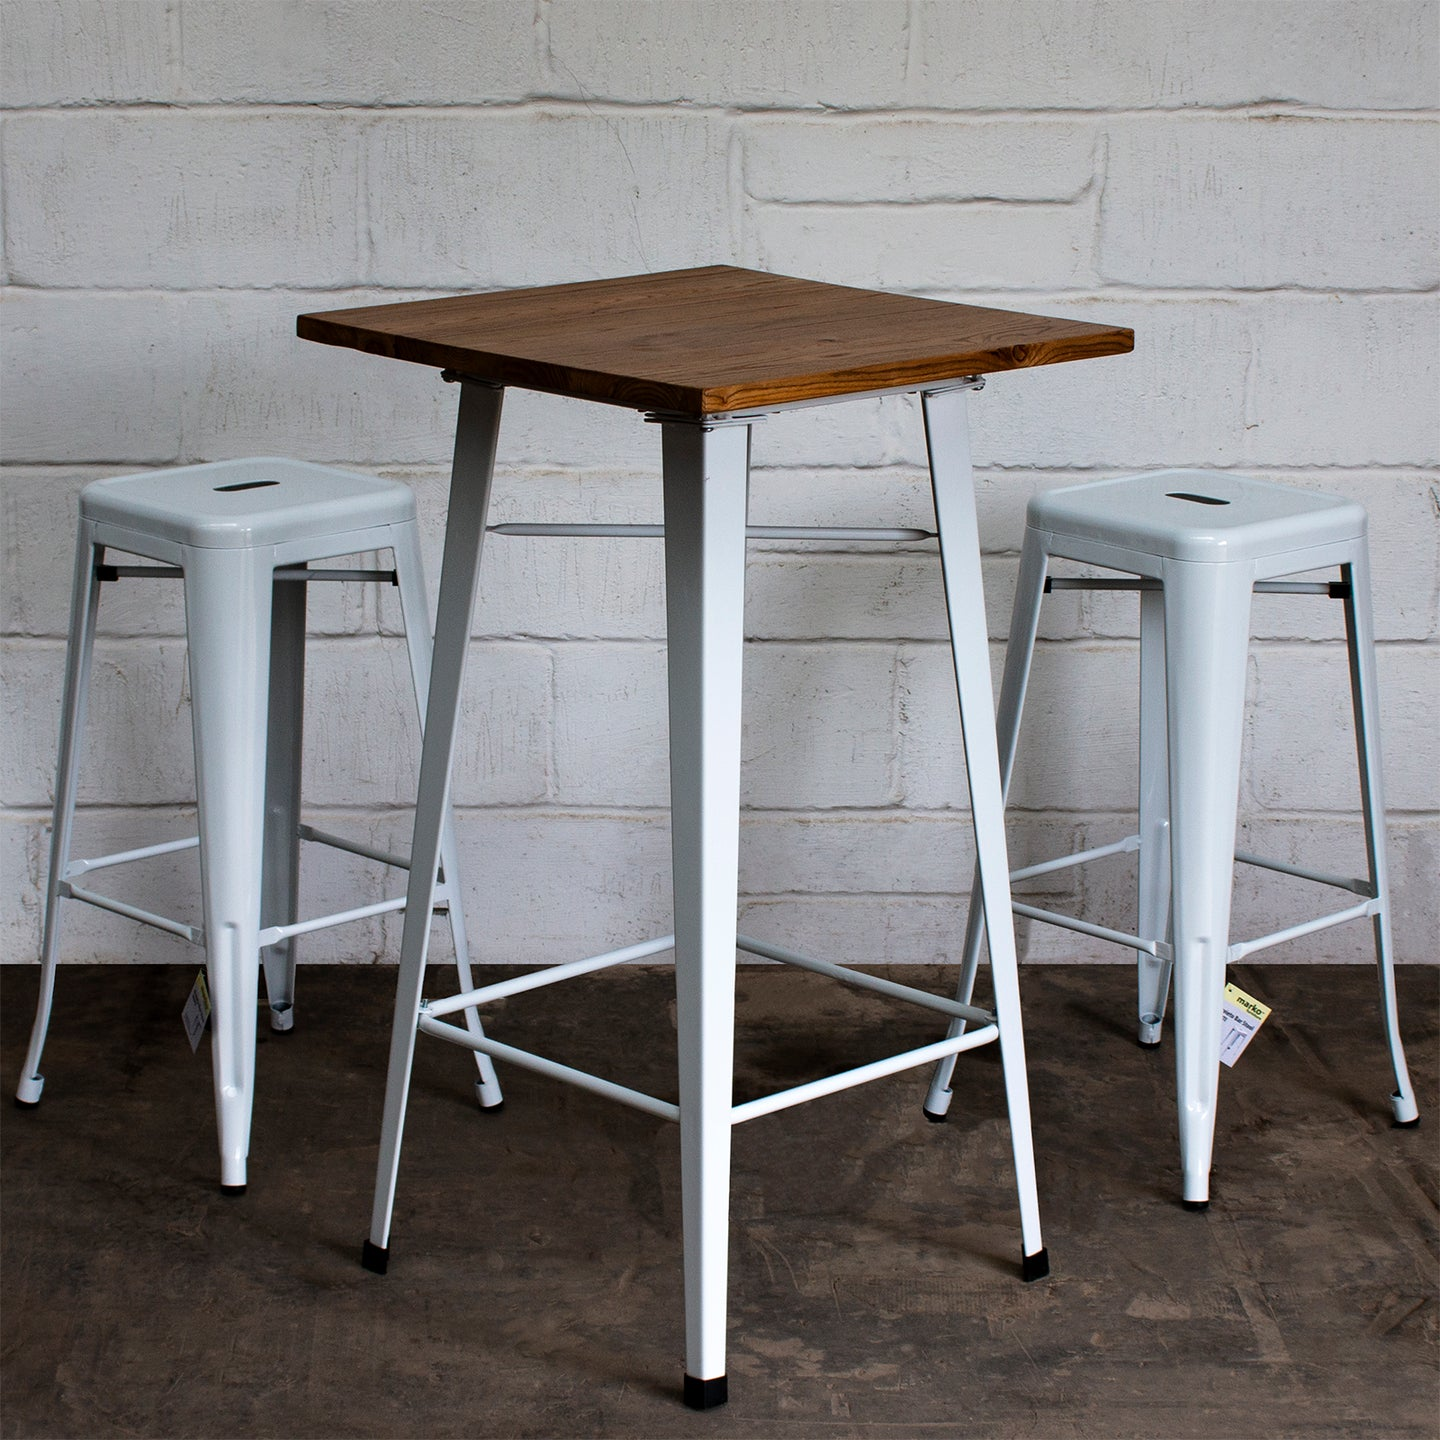 3PC Lodi Table & Orvieto Bar Stool Set - White